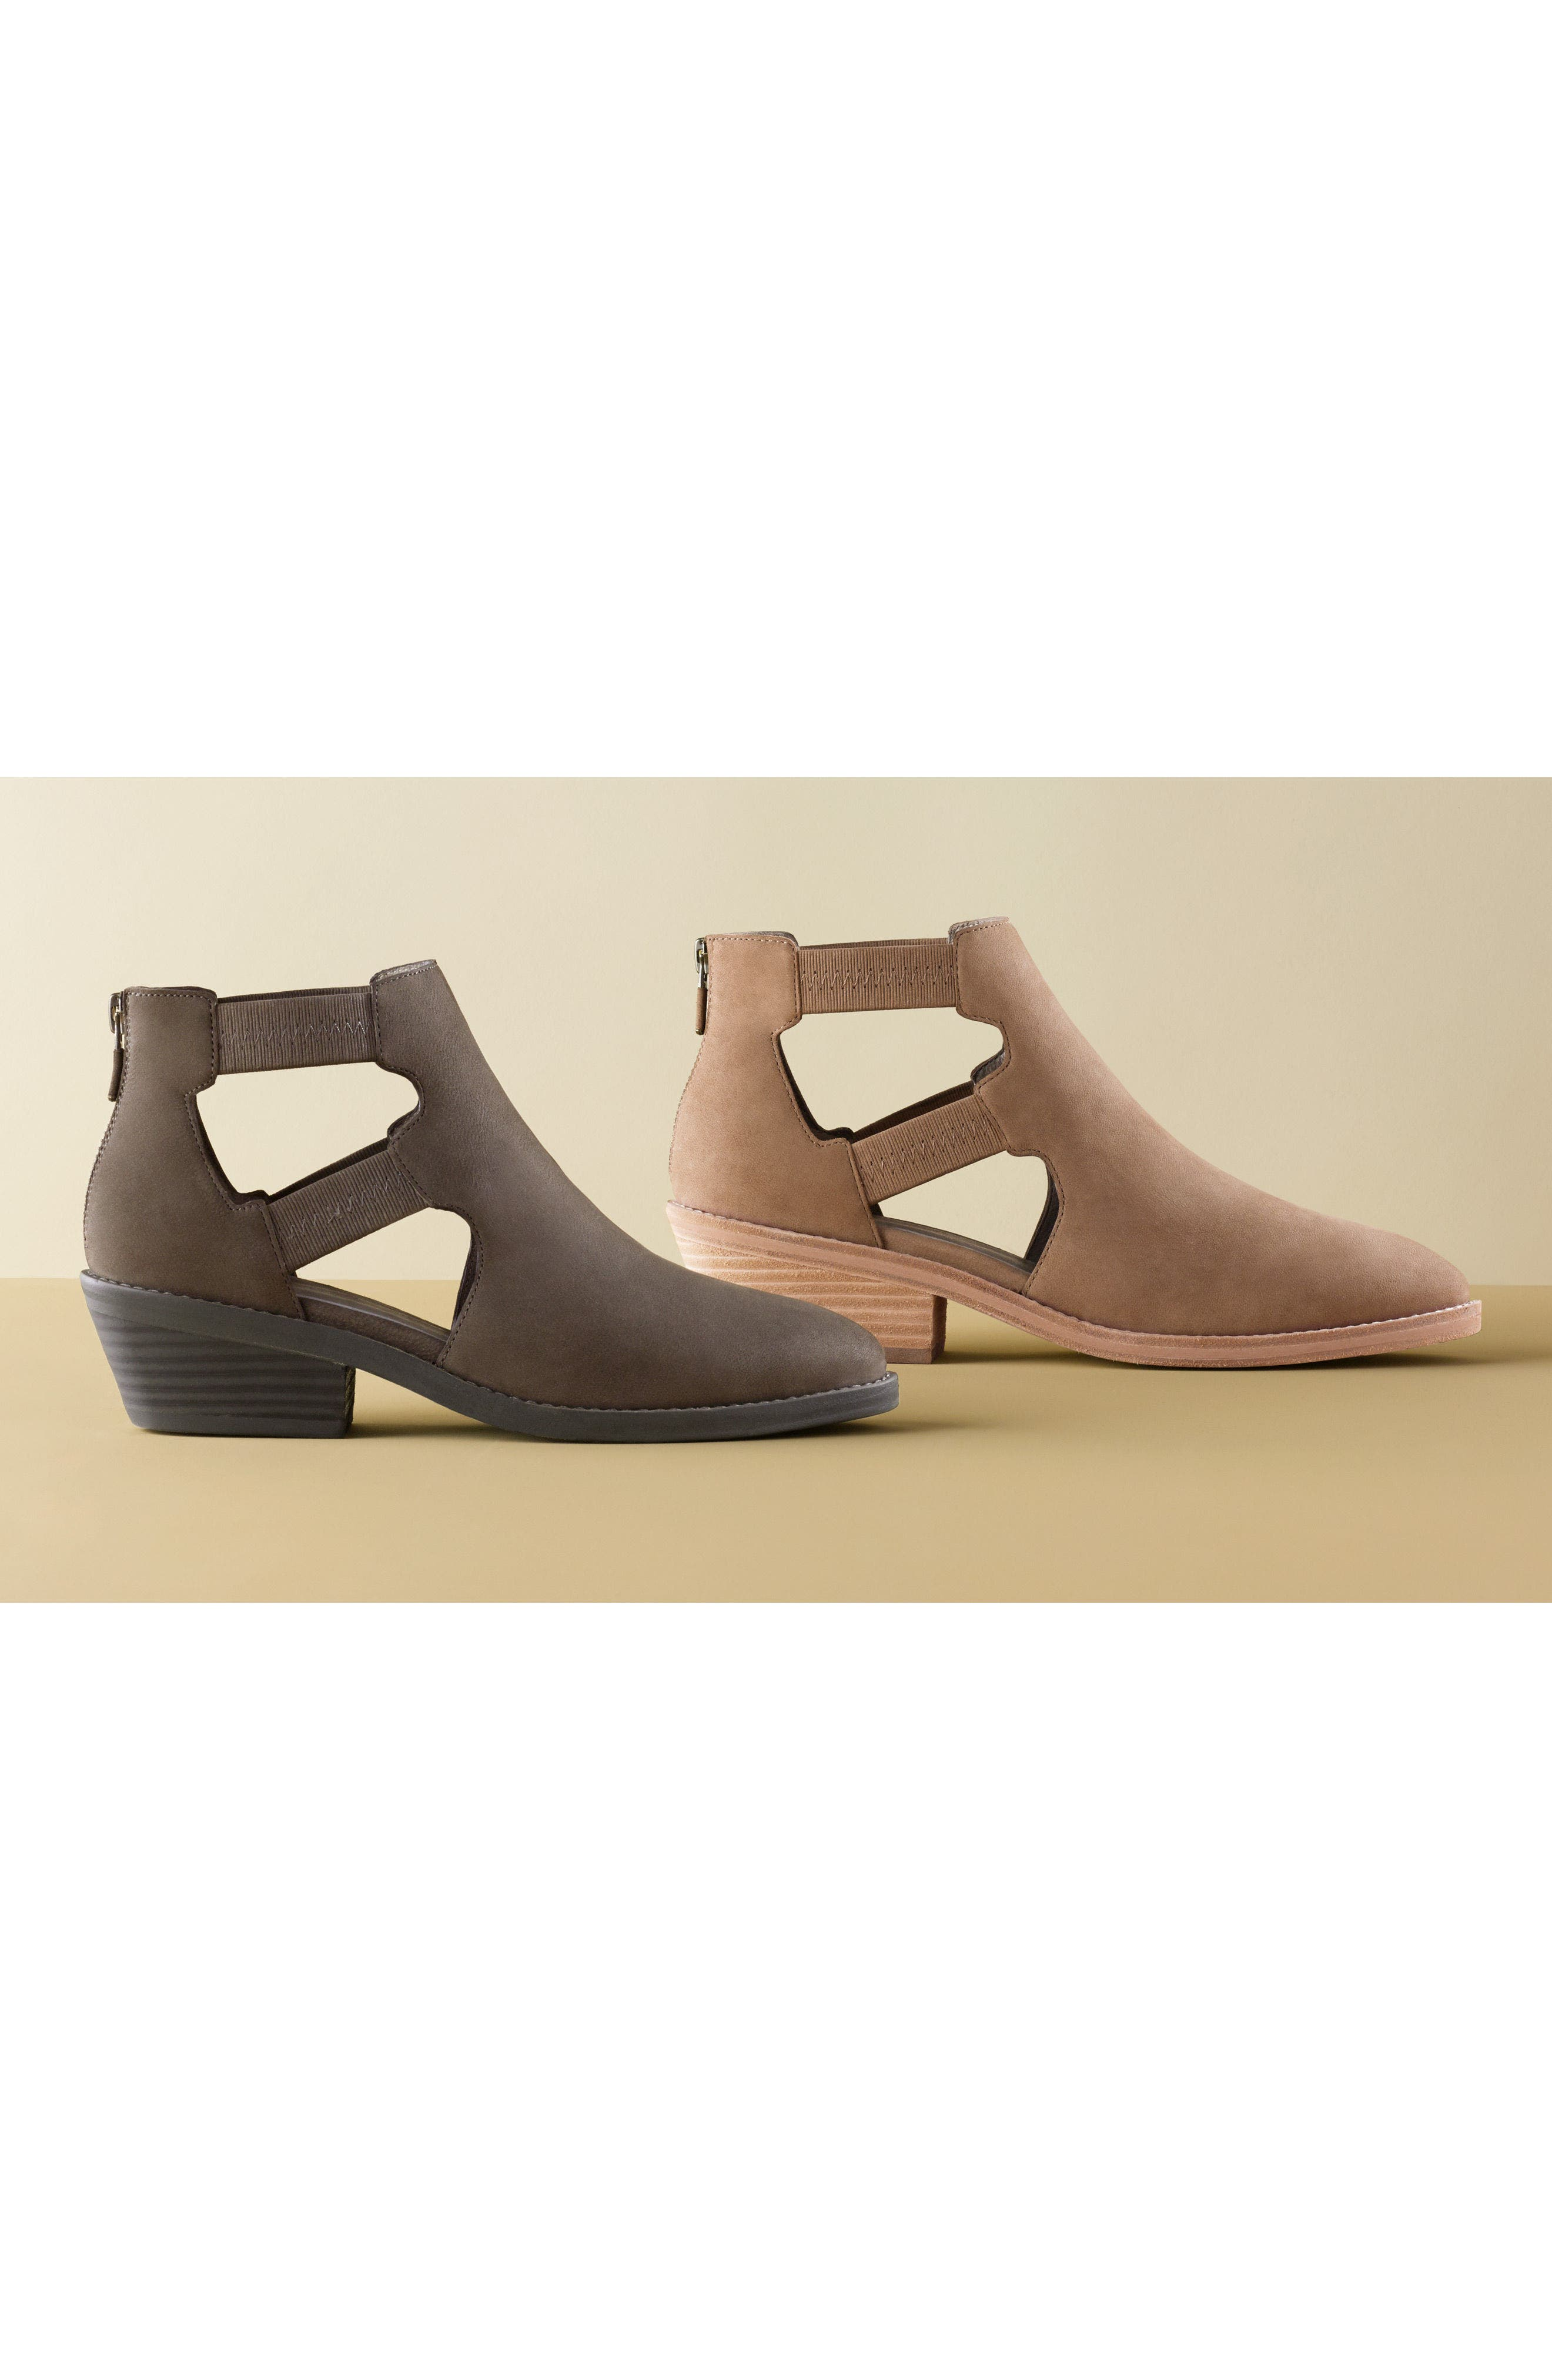 Vanda Cutout Bootie,                             Alternate thumbnail 7, color,                             001